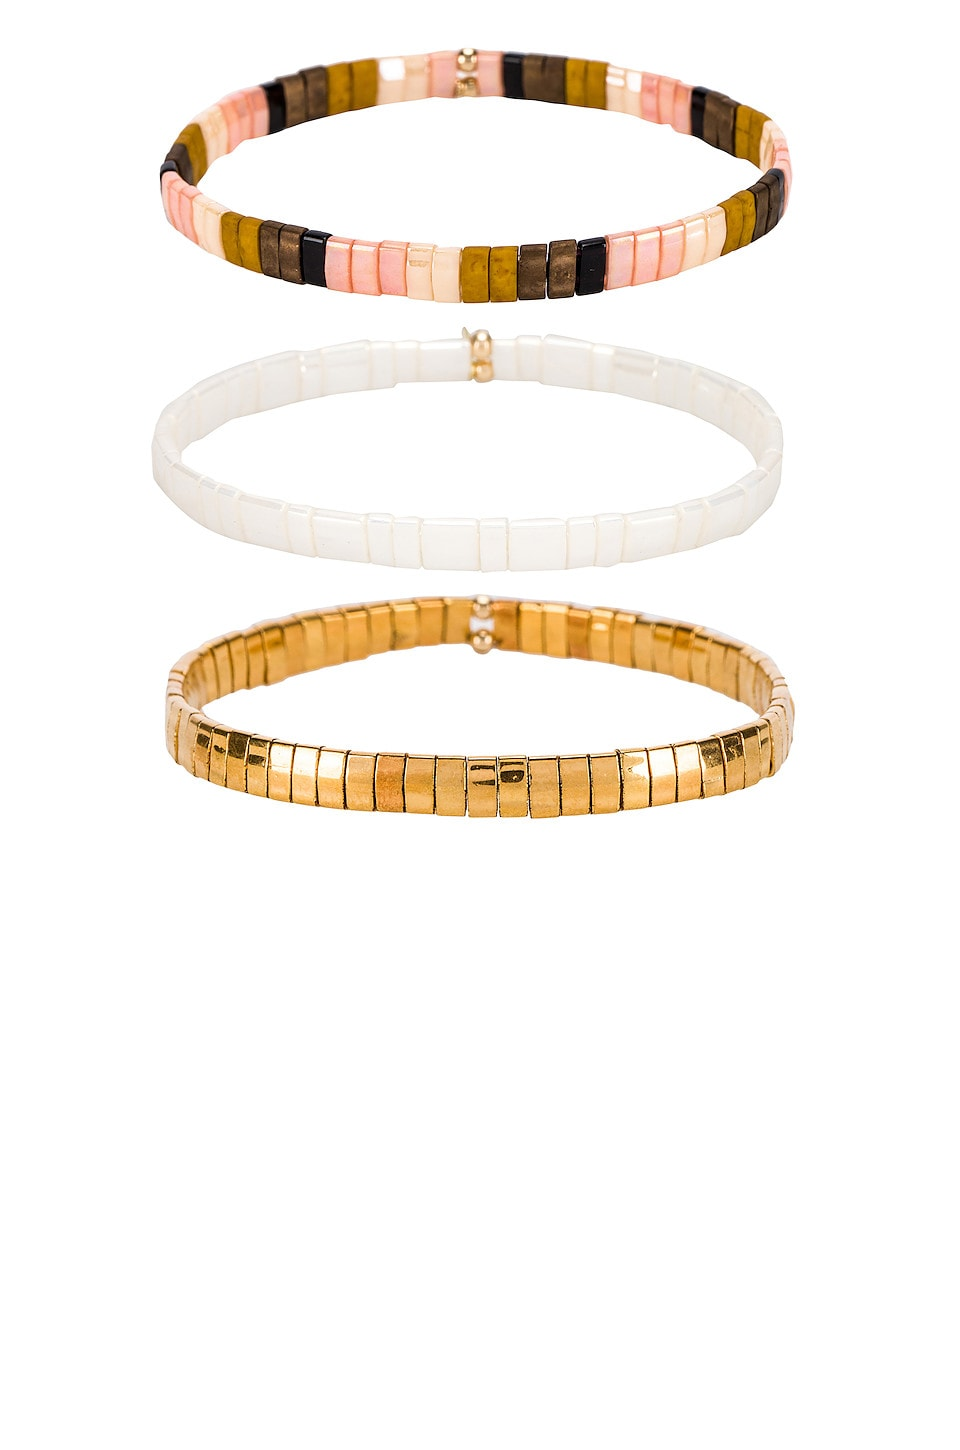 SHASHI Tilu Set of 3 Bracelets in Gold & Cream